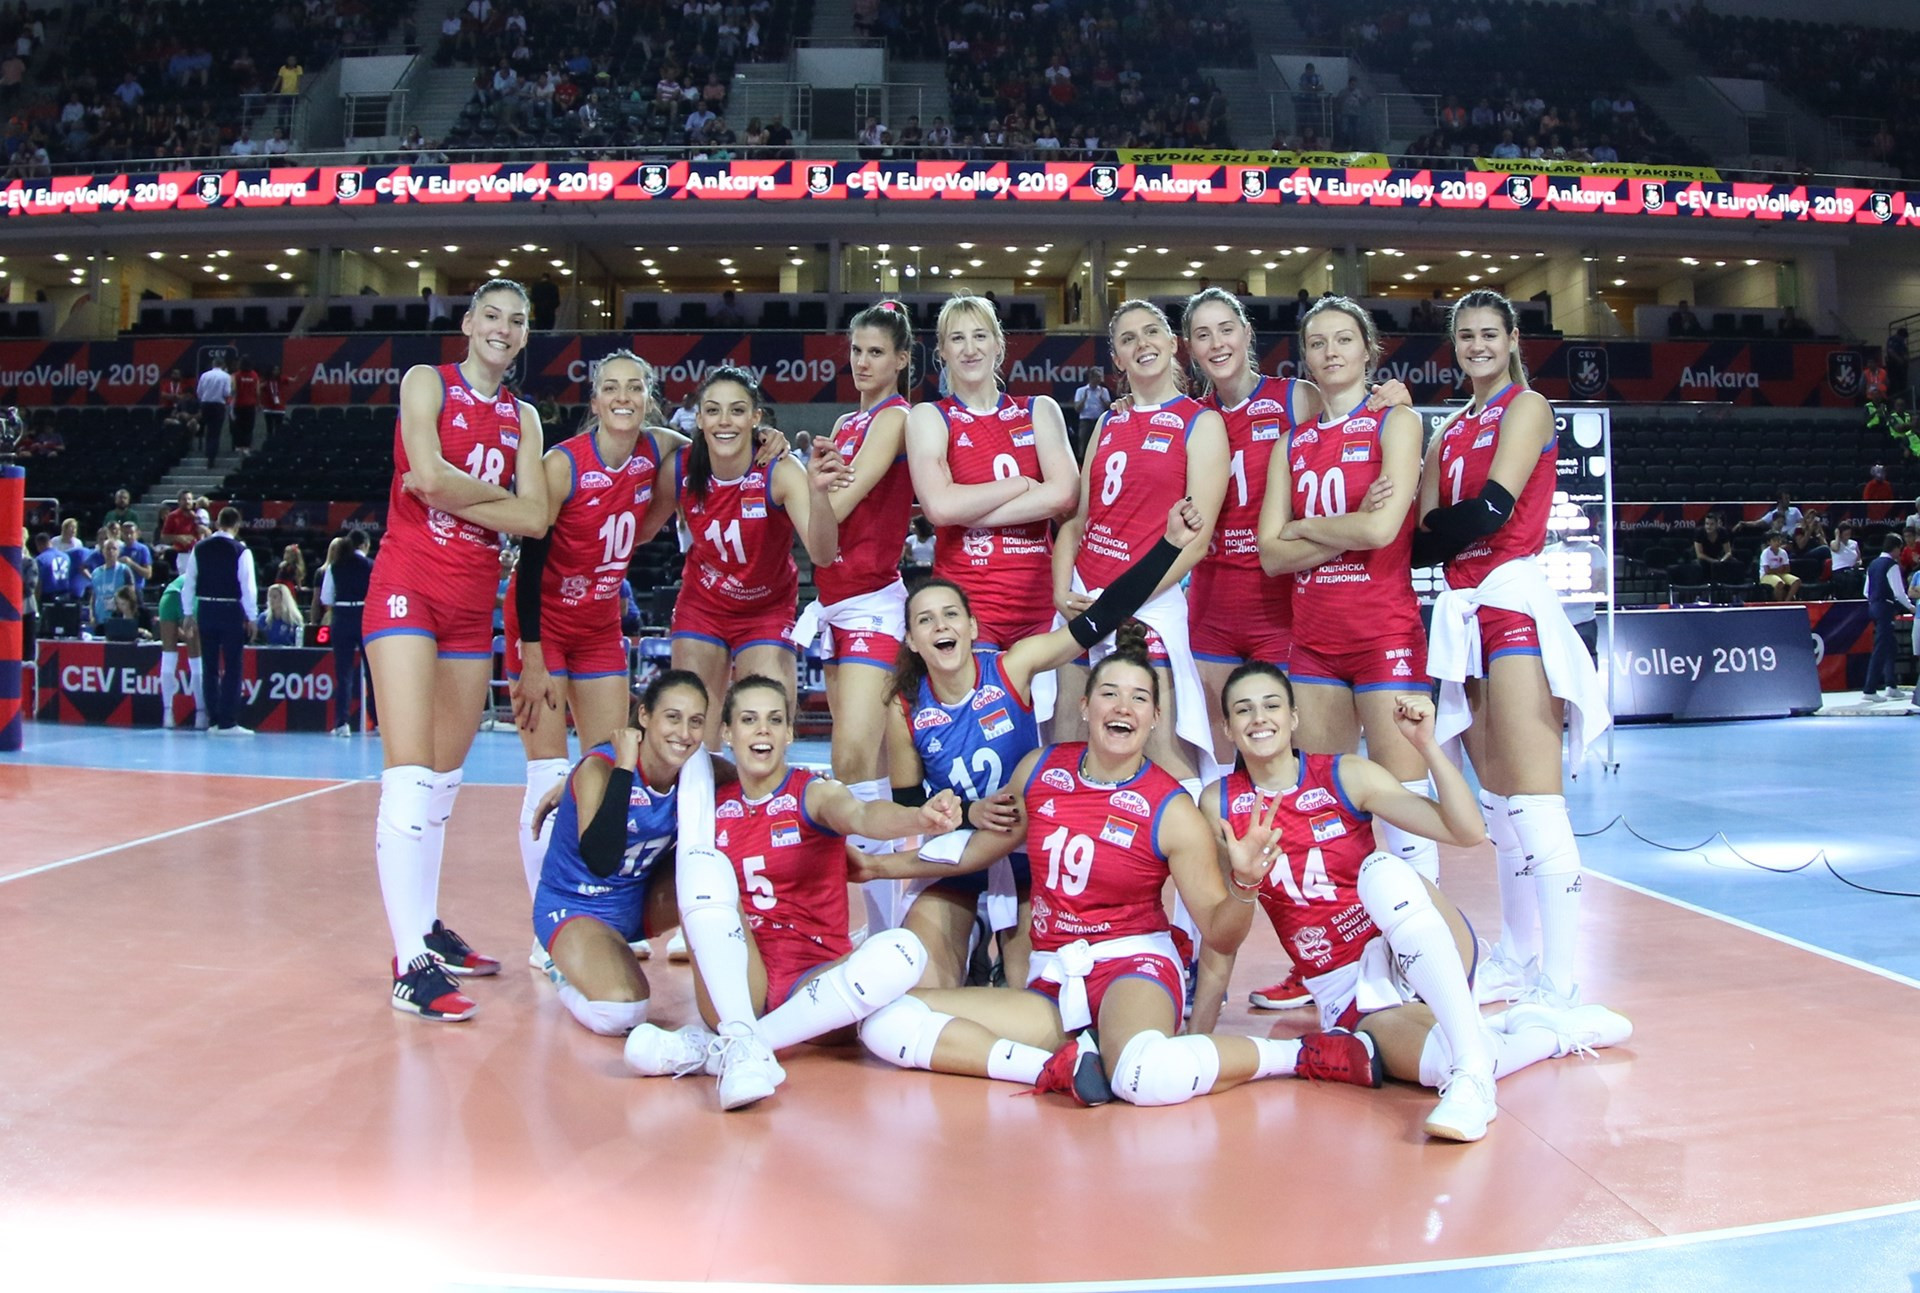 Serbia beat Bulgaria to reach semi-finals at Women's European Volleyball Championship